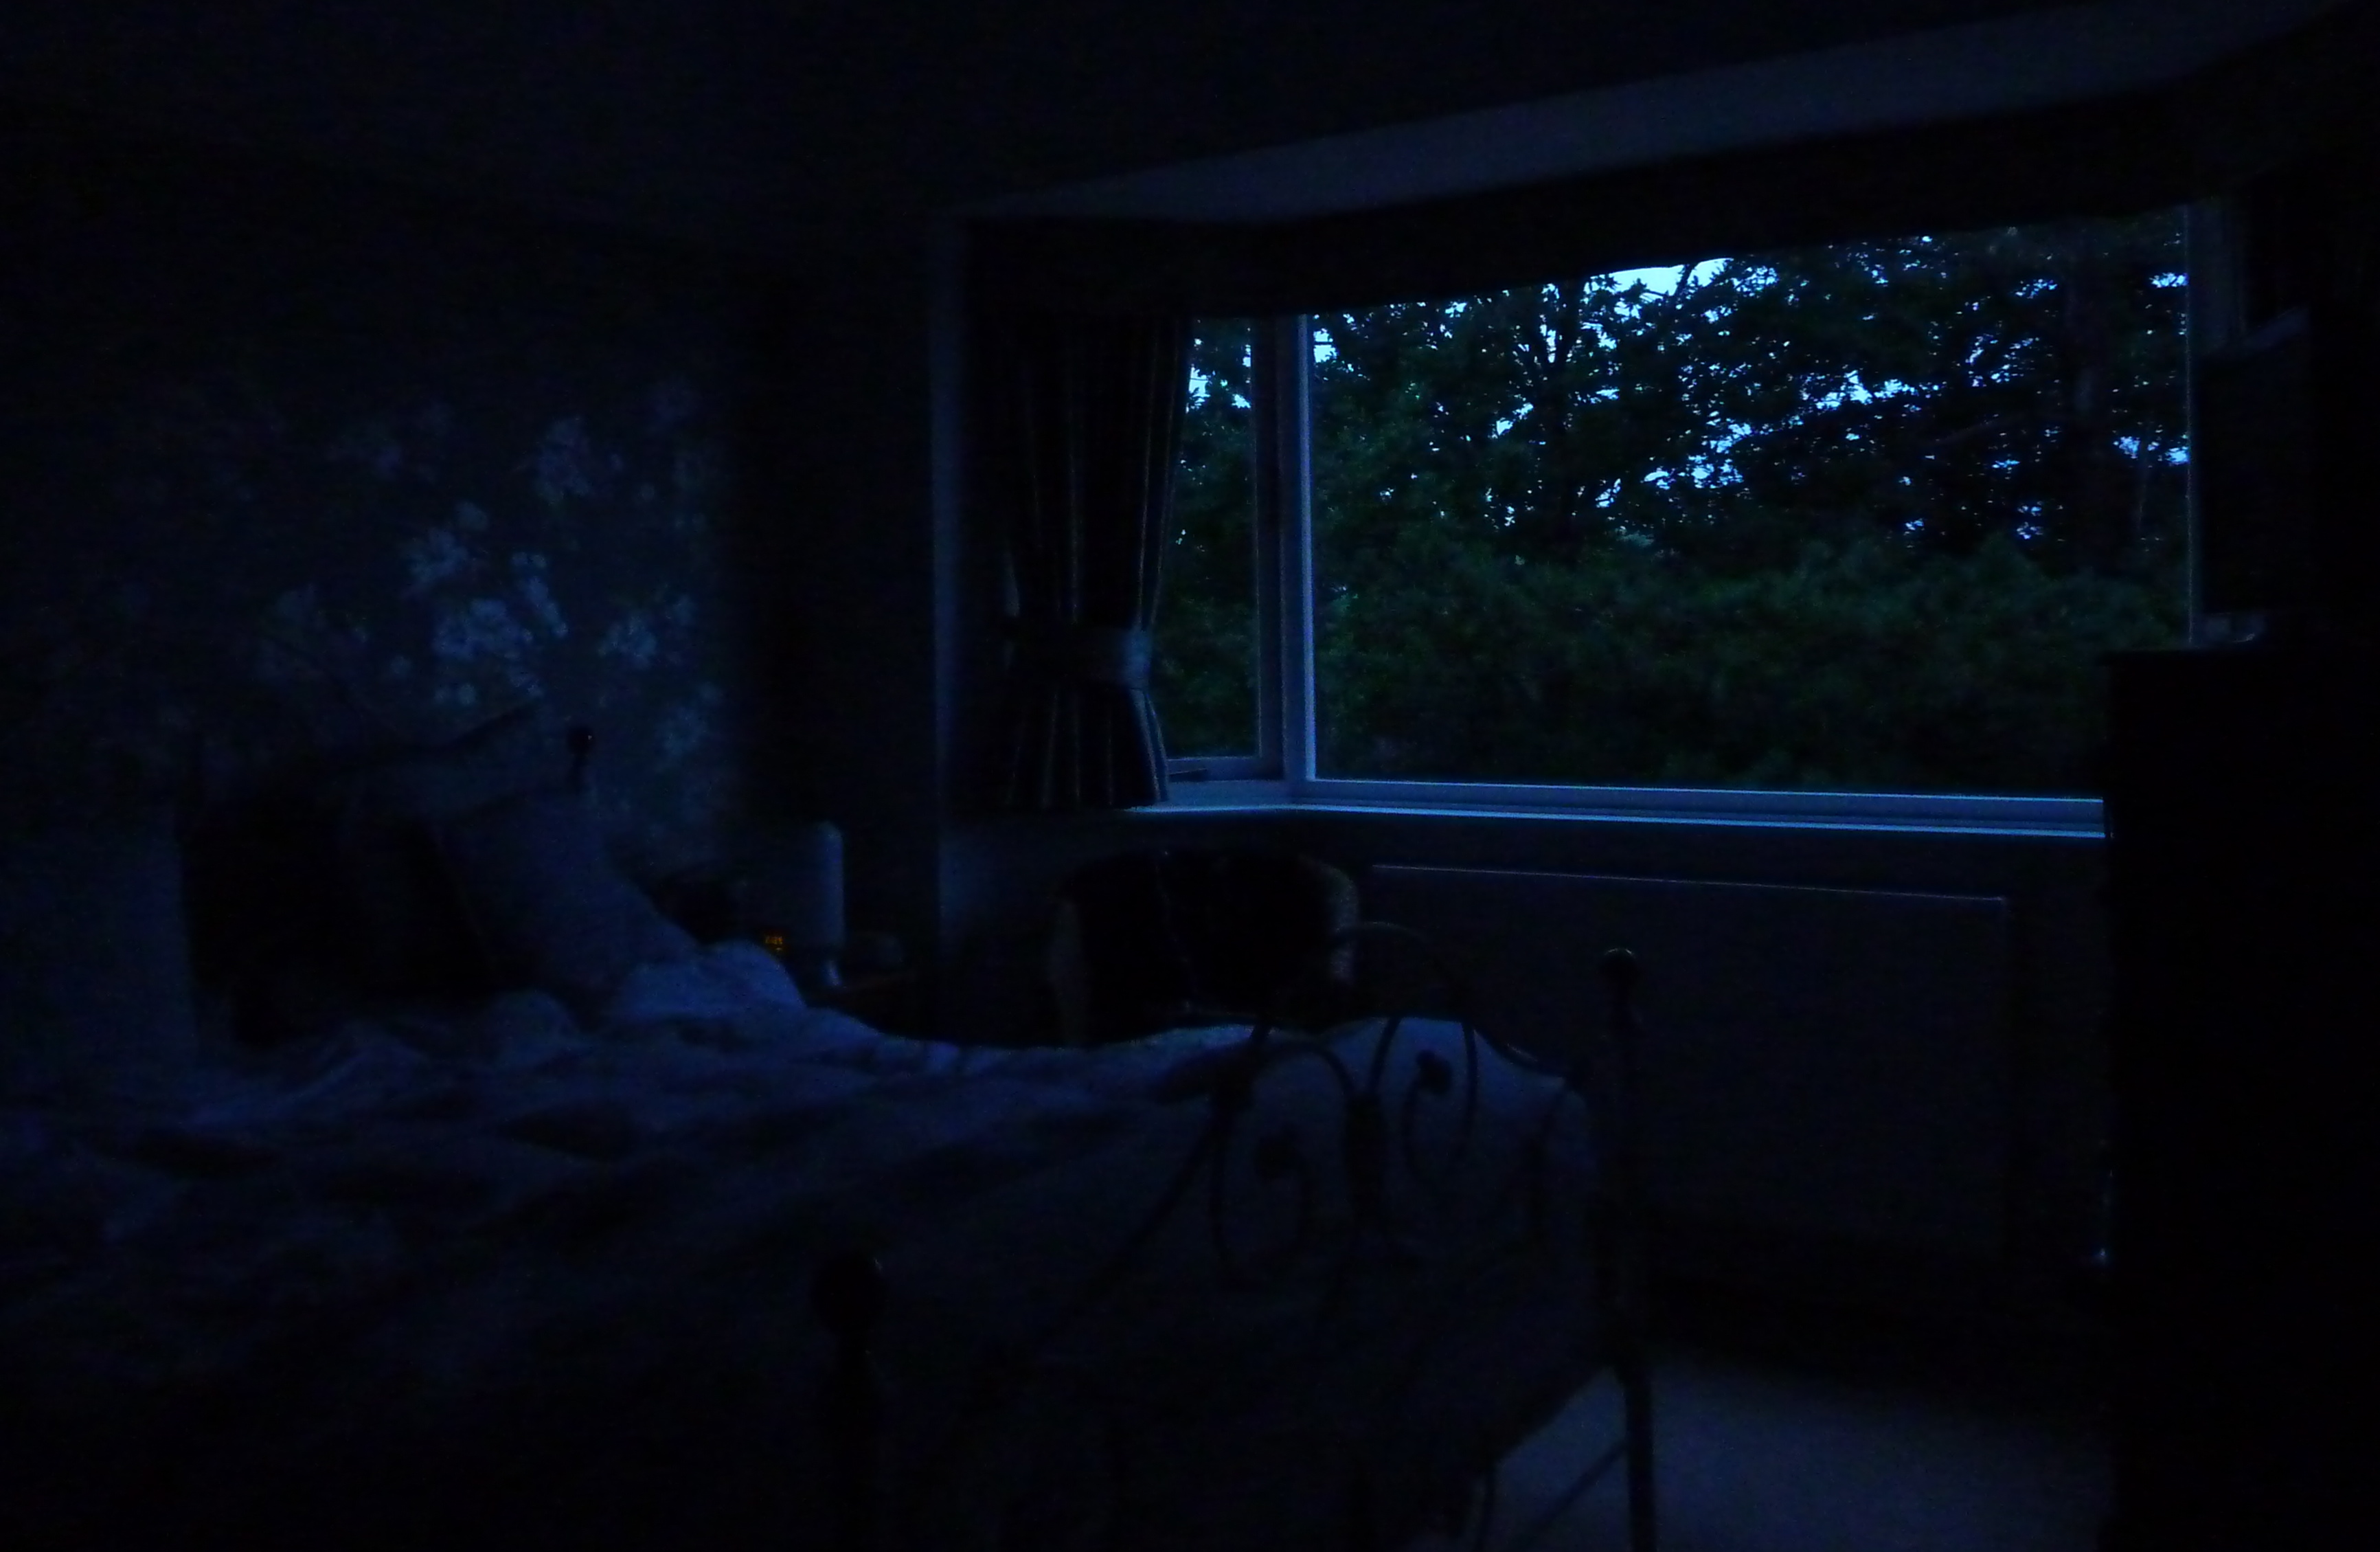 Bedroom at night time - Dark Bedroom Jpg 3465 2259